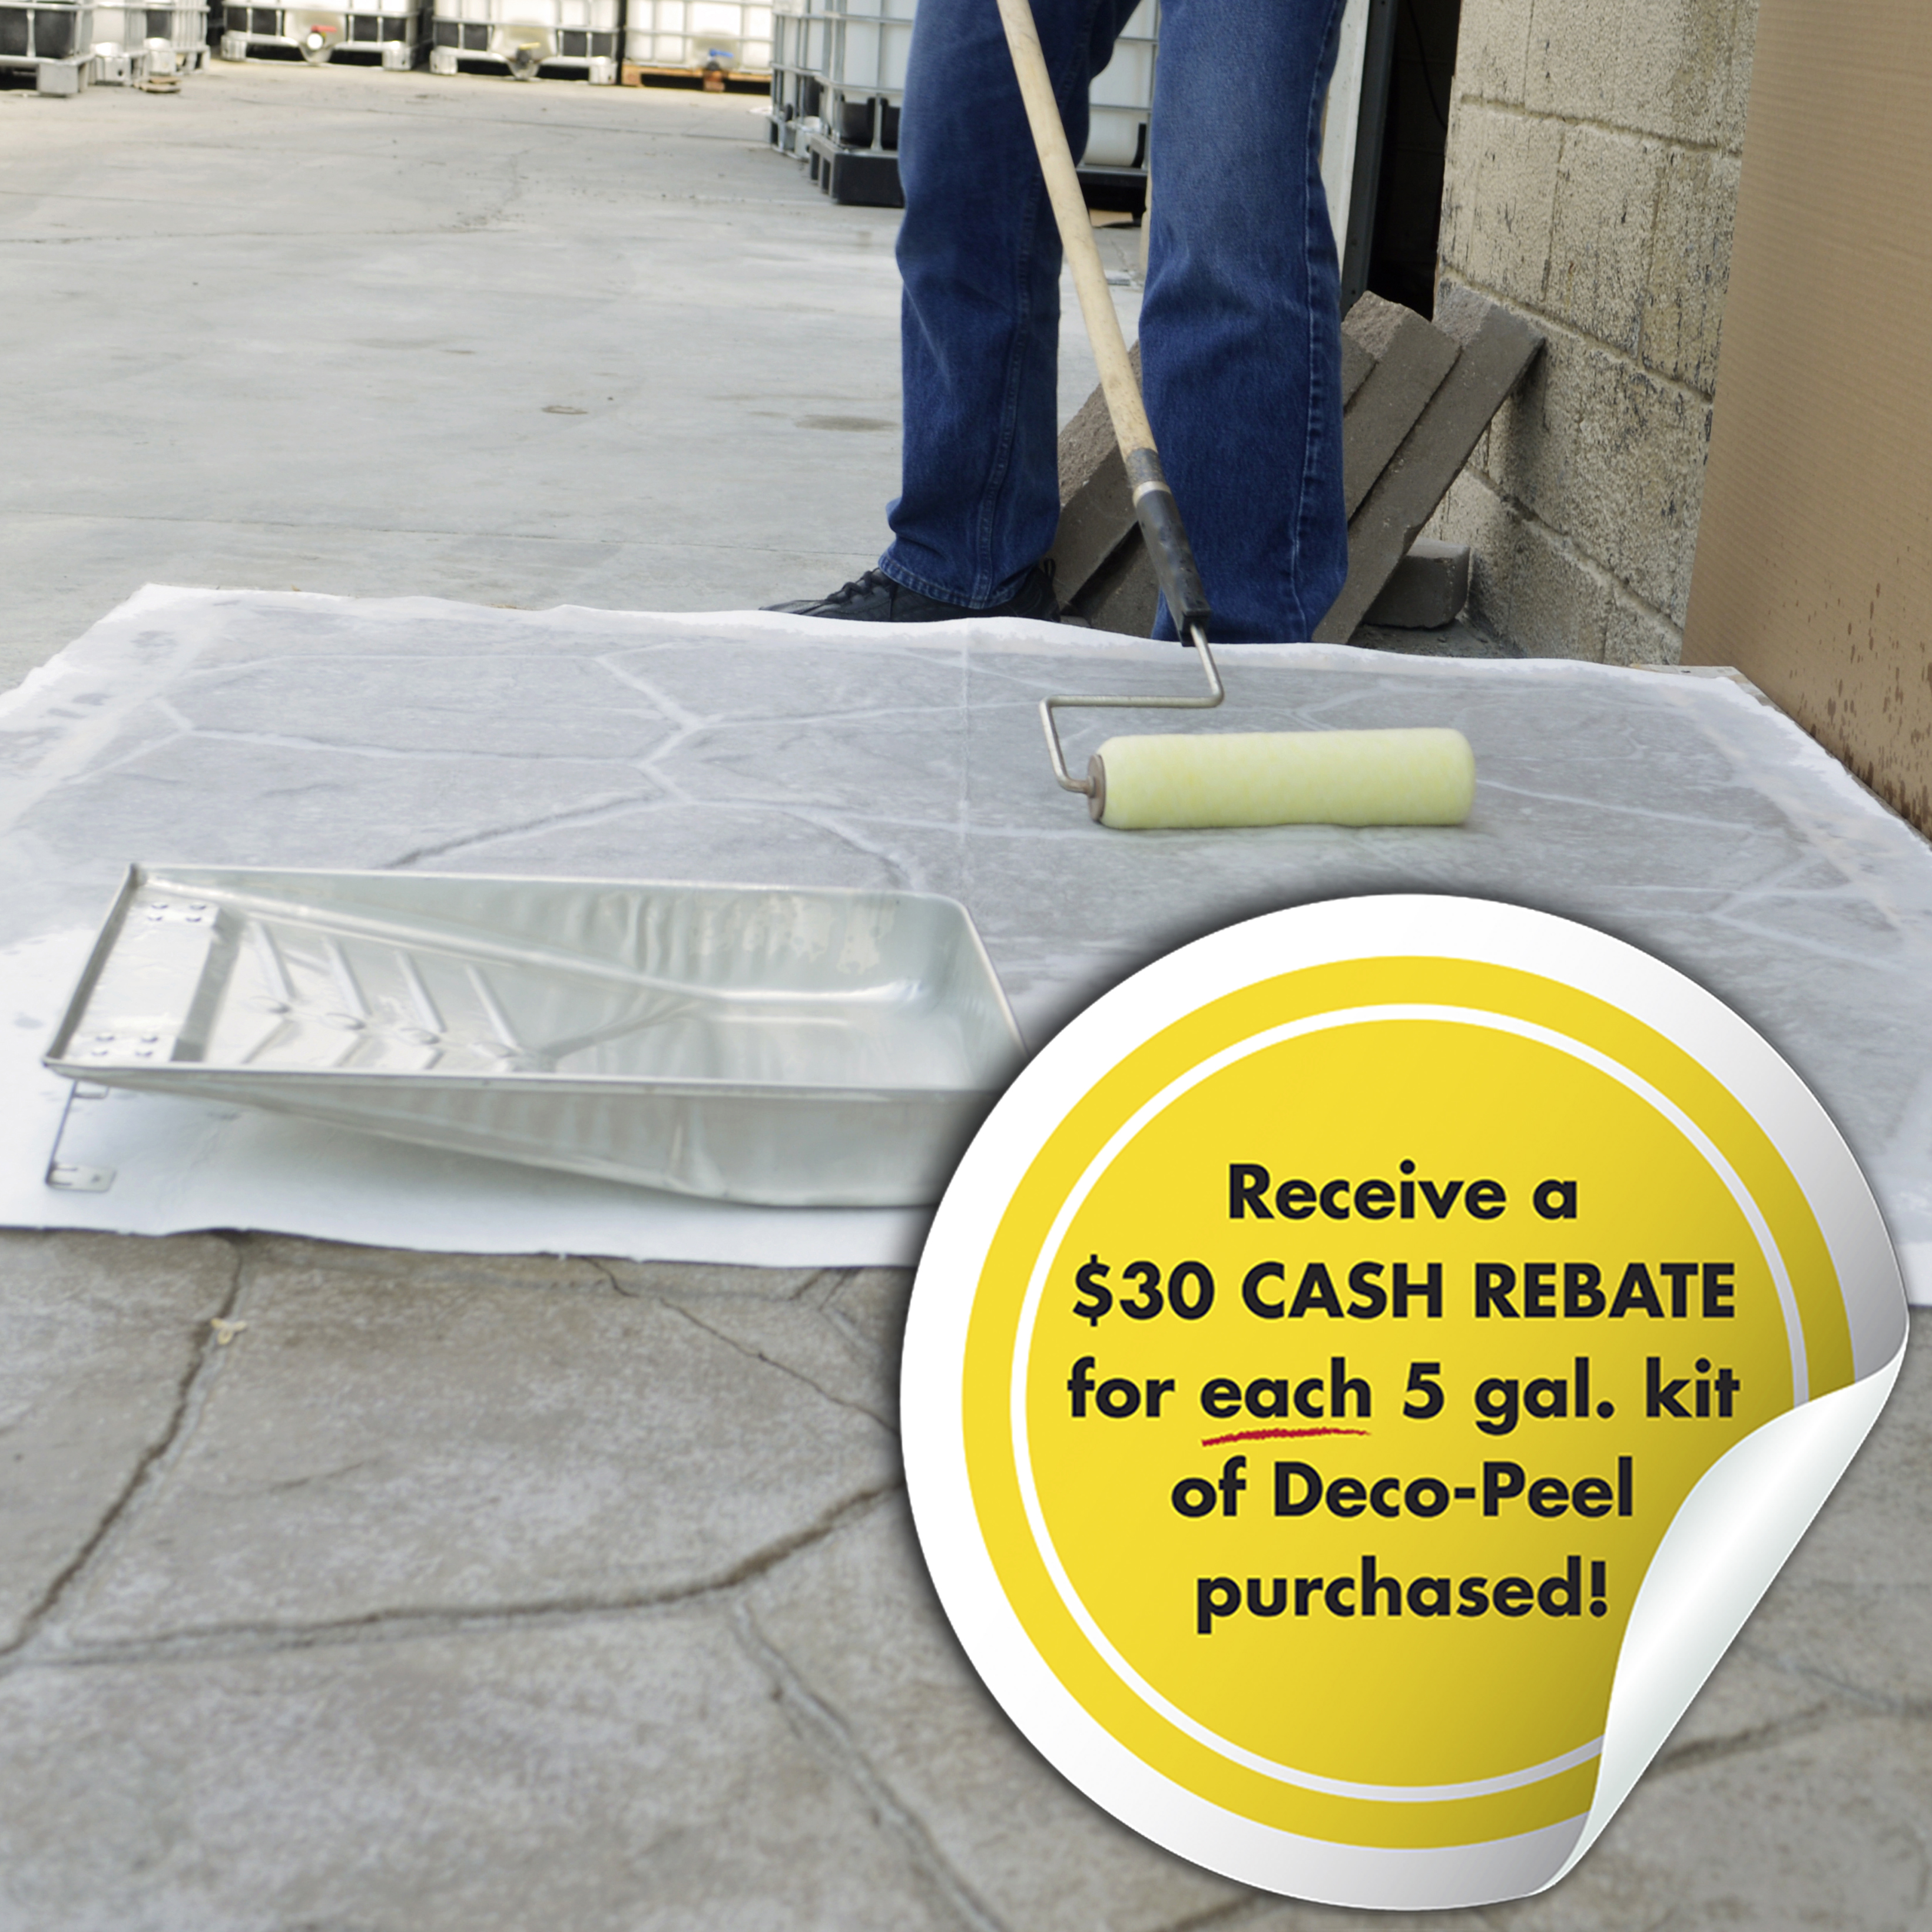 Captivating Stripper For Decorative Acrylic Sealers/Coatings